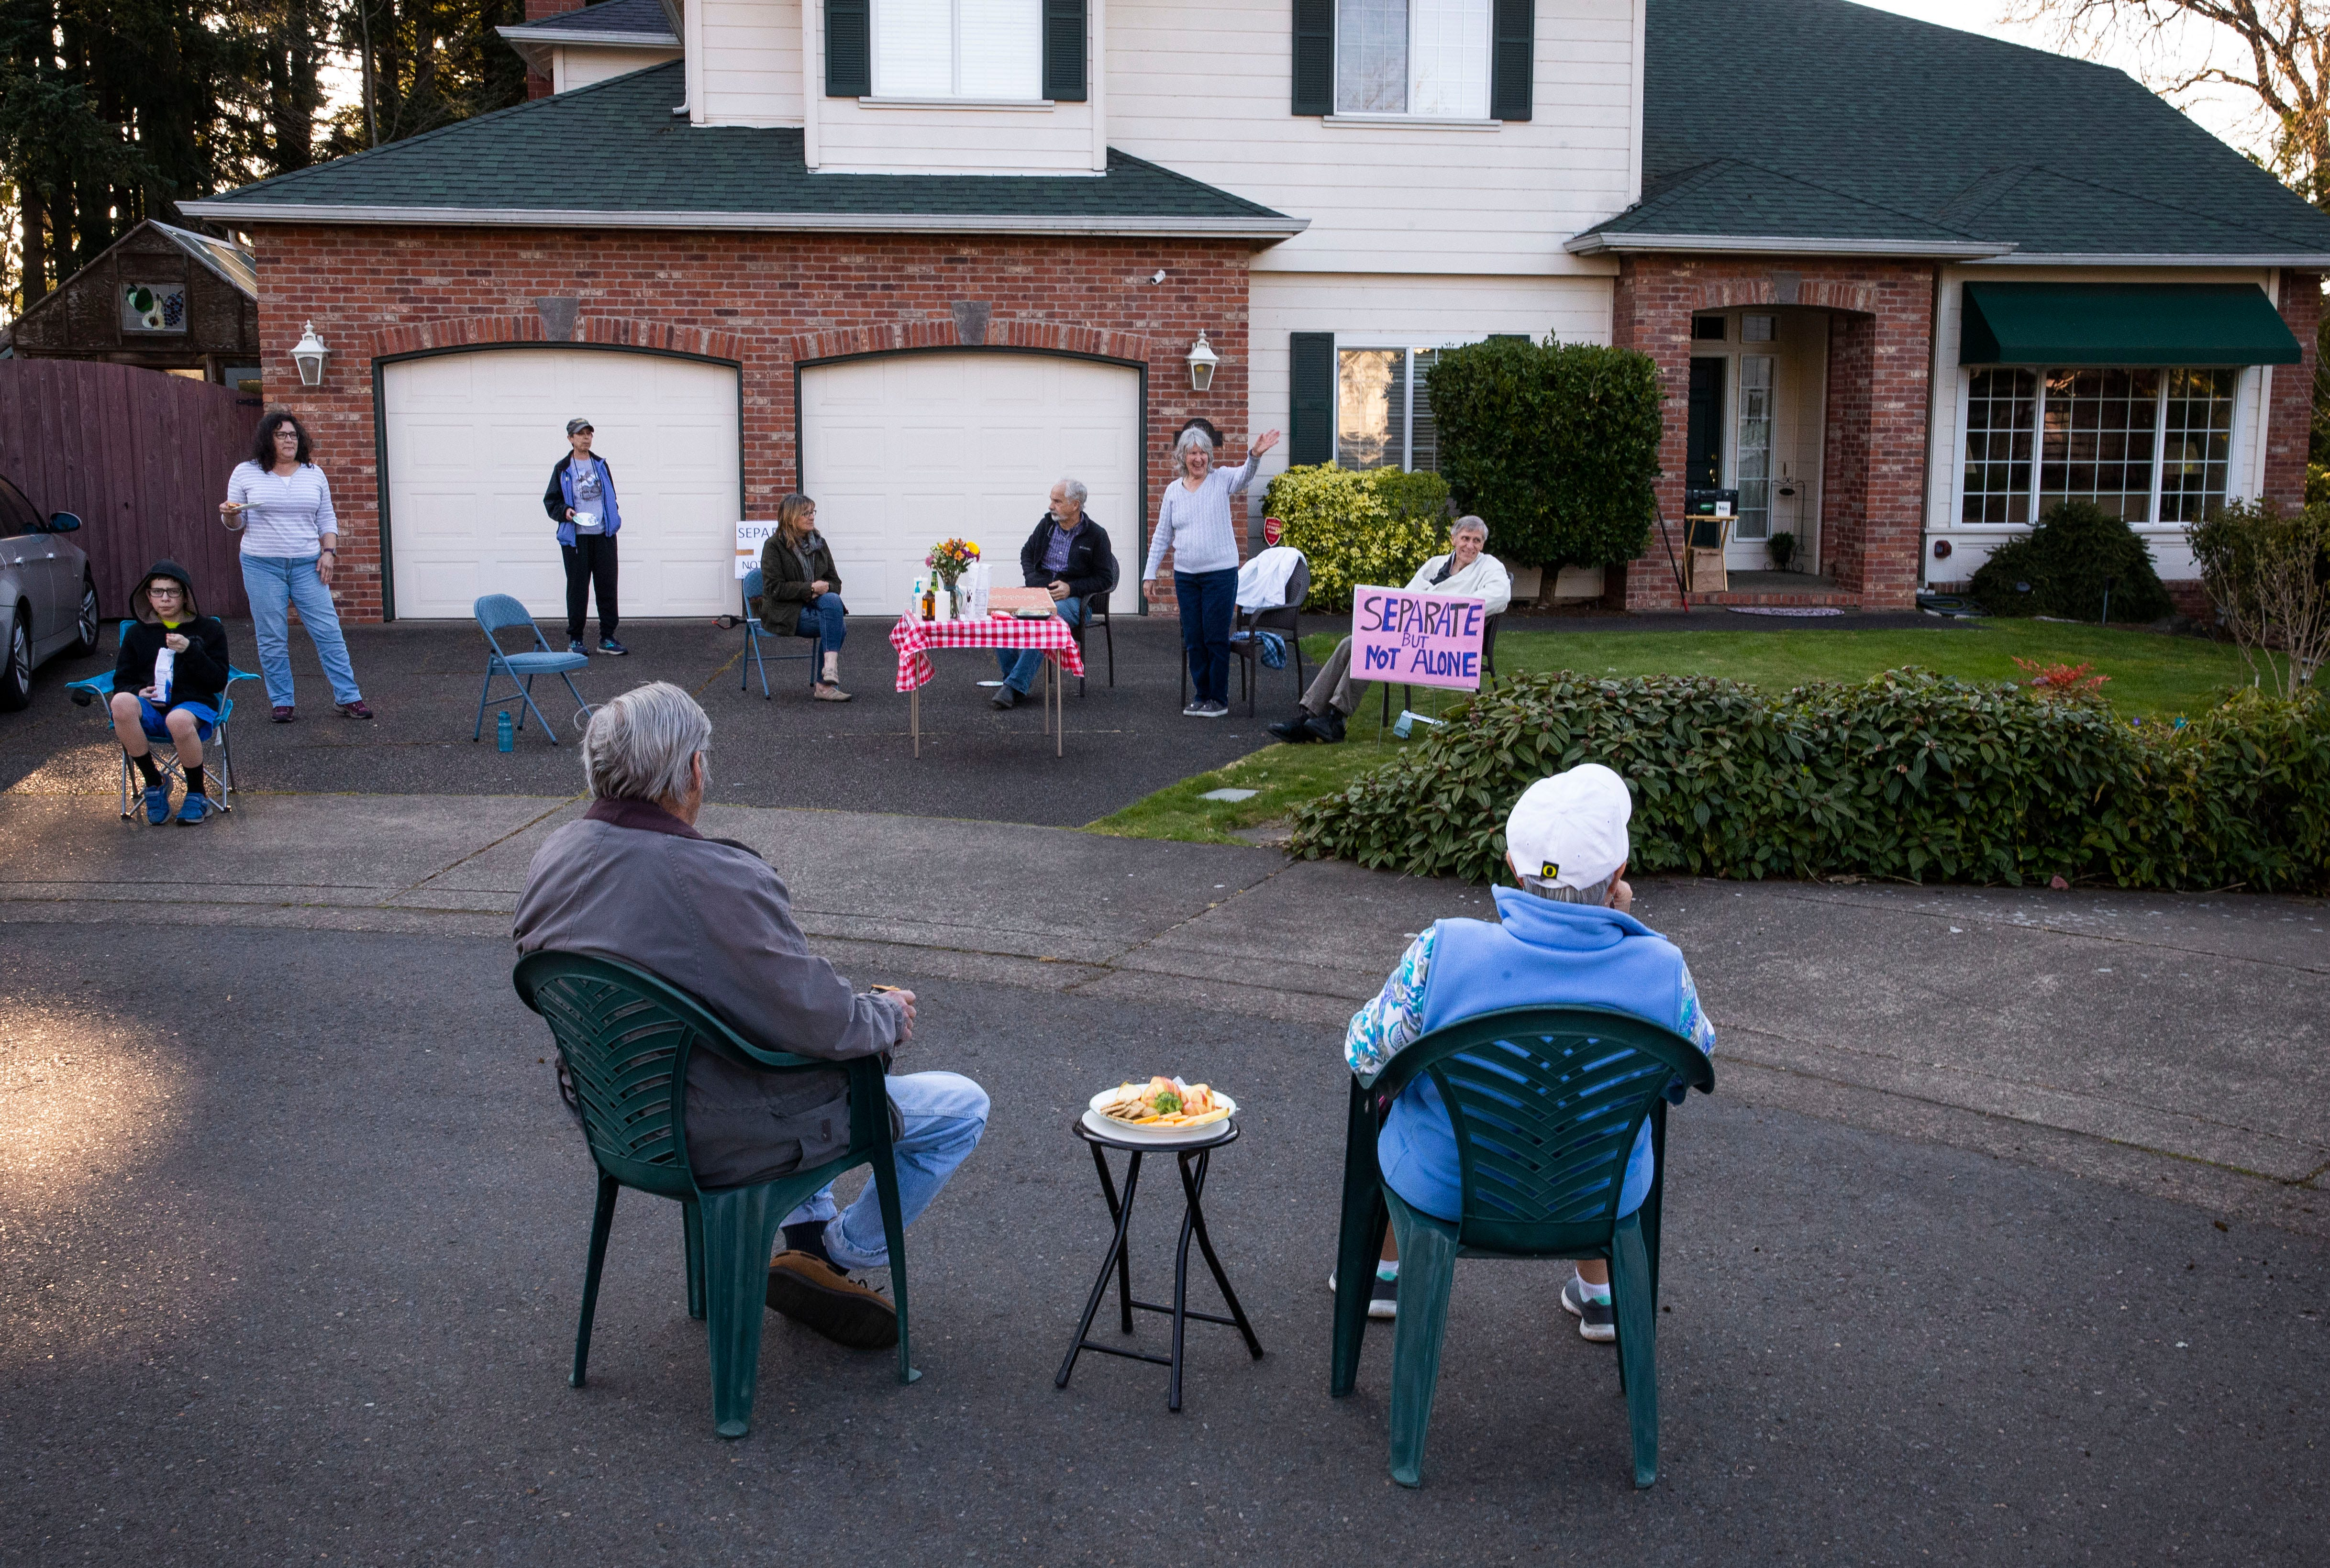 Communities made the best of lockdowns as Americans pulled together to fight the spread of the virus. In Eugene, Ore., Mary Lou Vignola, center, waves to her neighbors during a socially distant block party she and her husband, Frank, helped organize March 21.